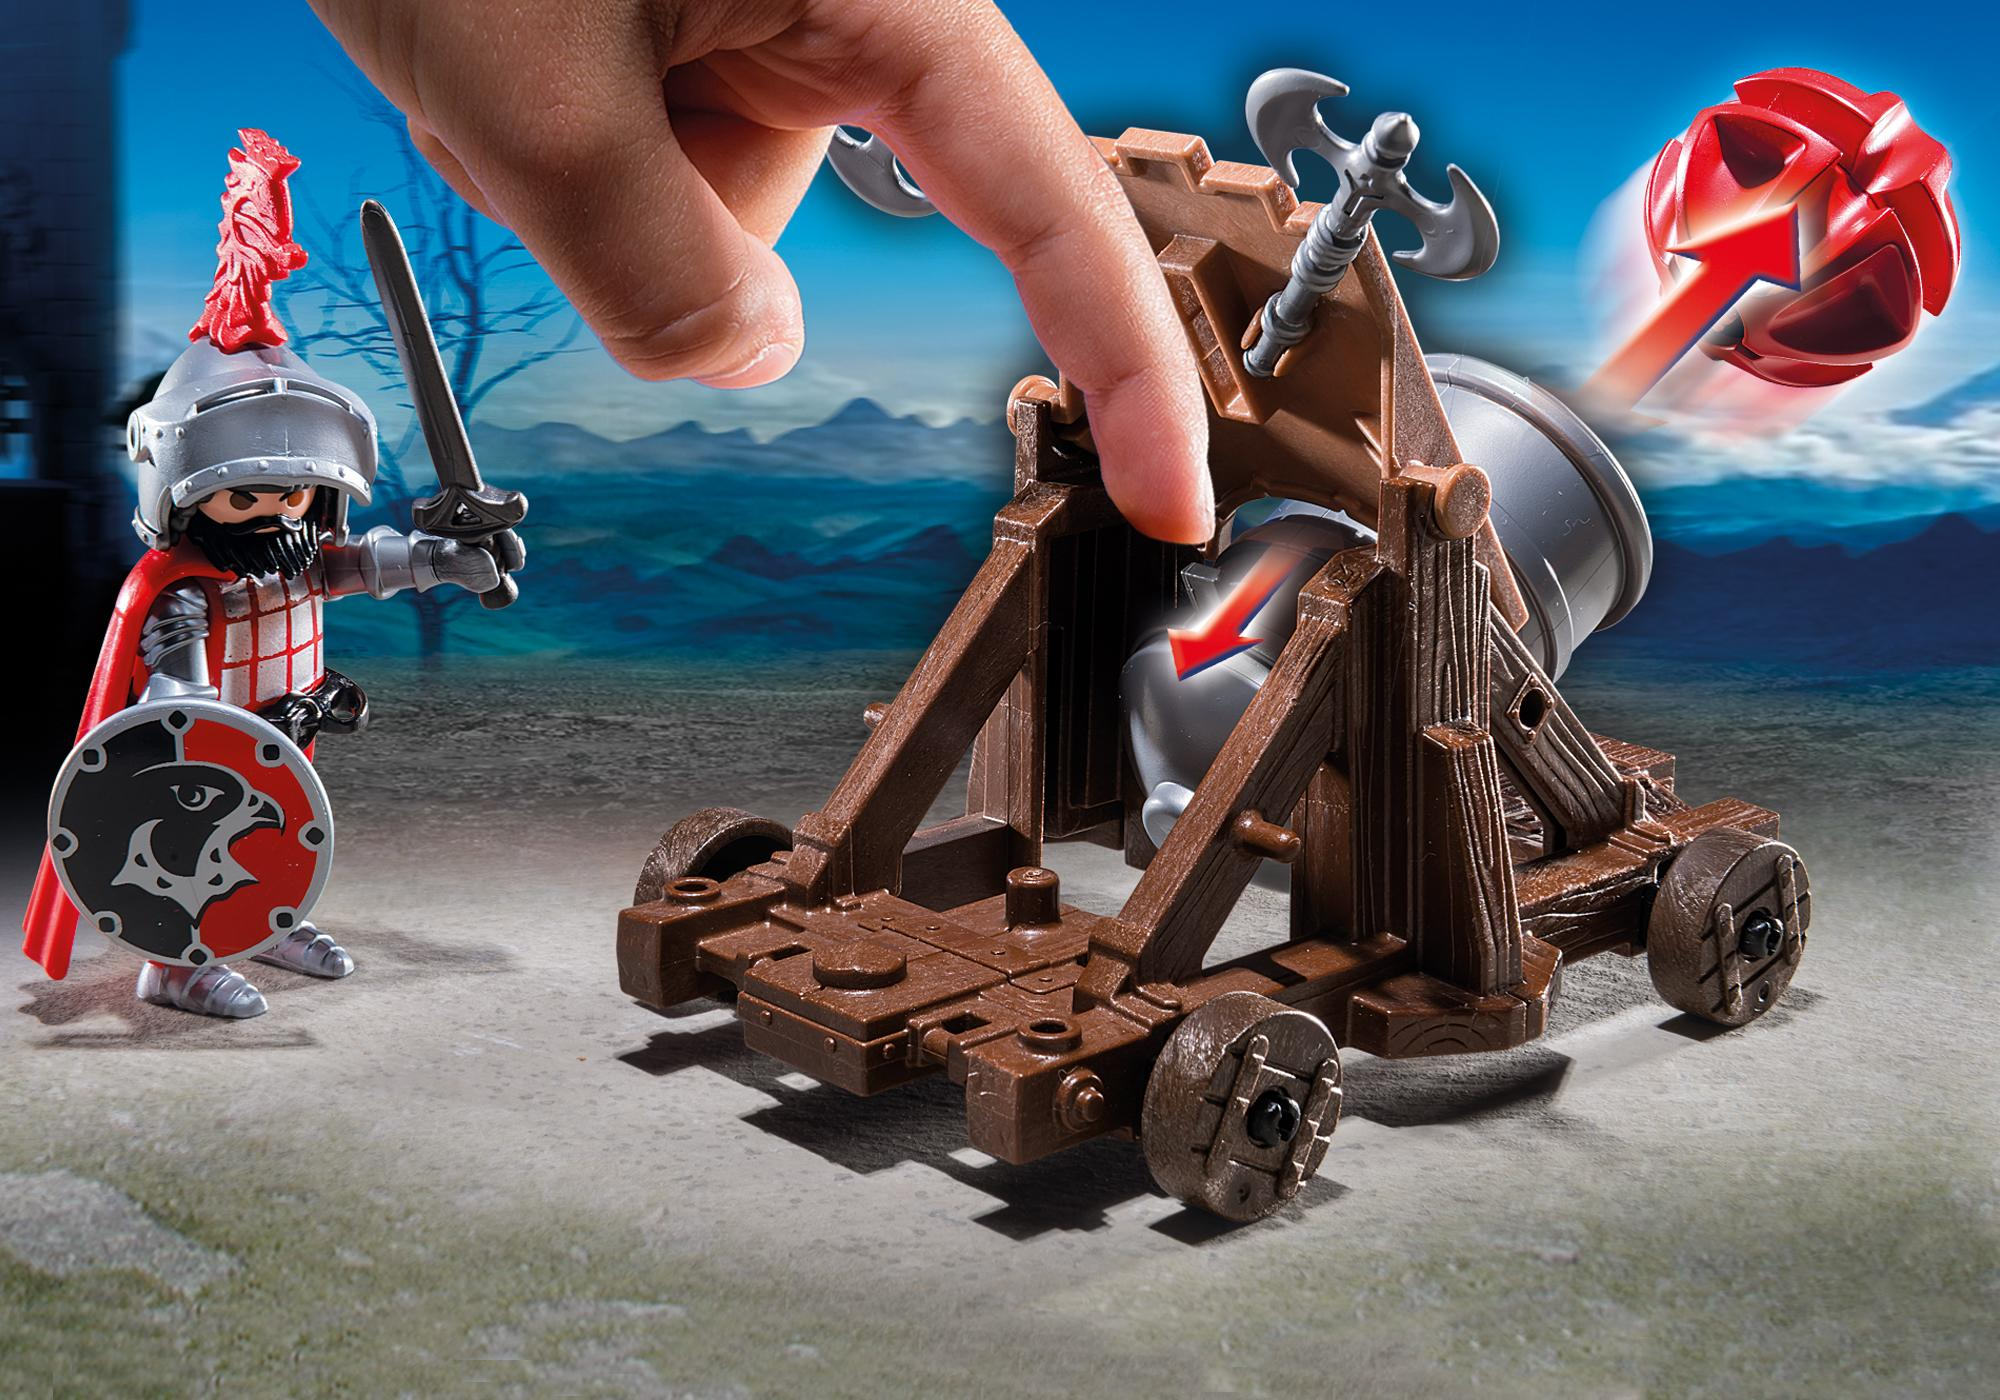 http://media.playmobil.com/i/playmobil/6038_product_extra2/Hawk Knights` Battle Cannon